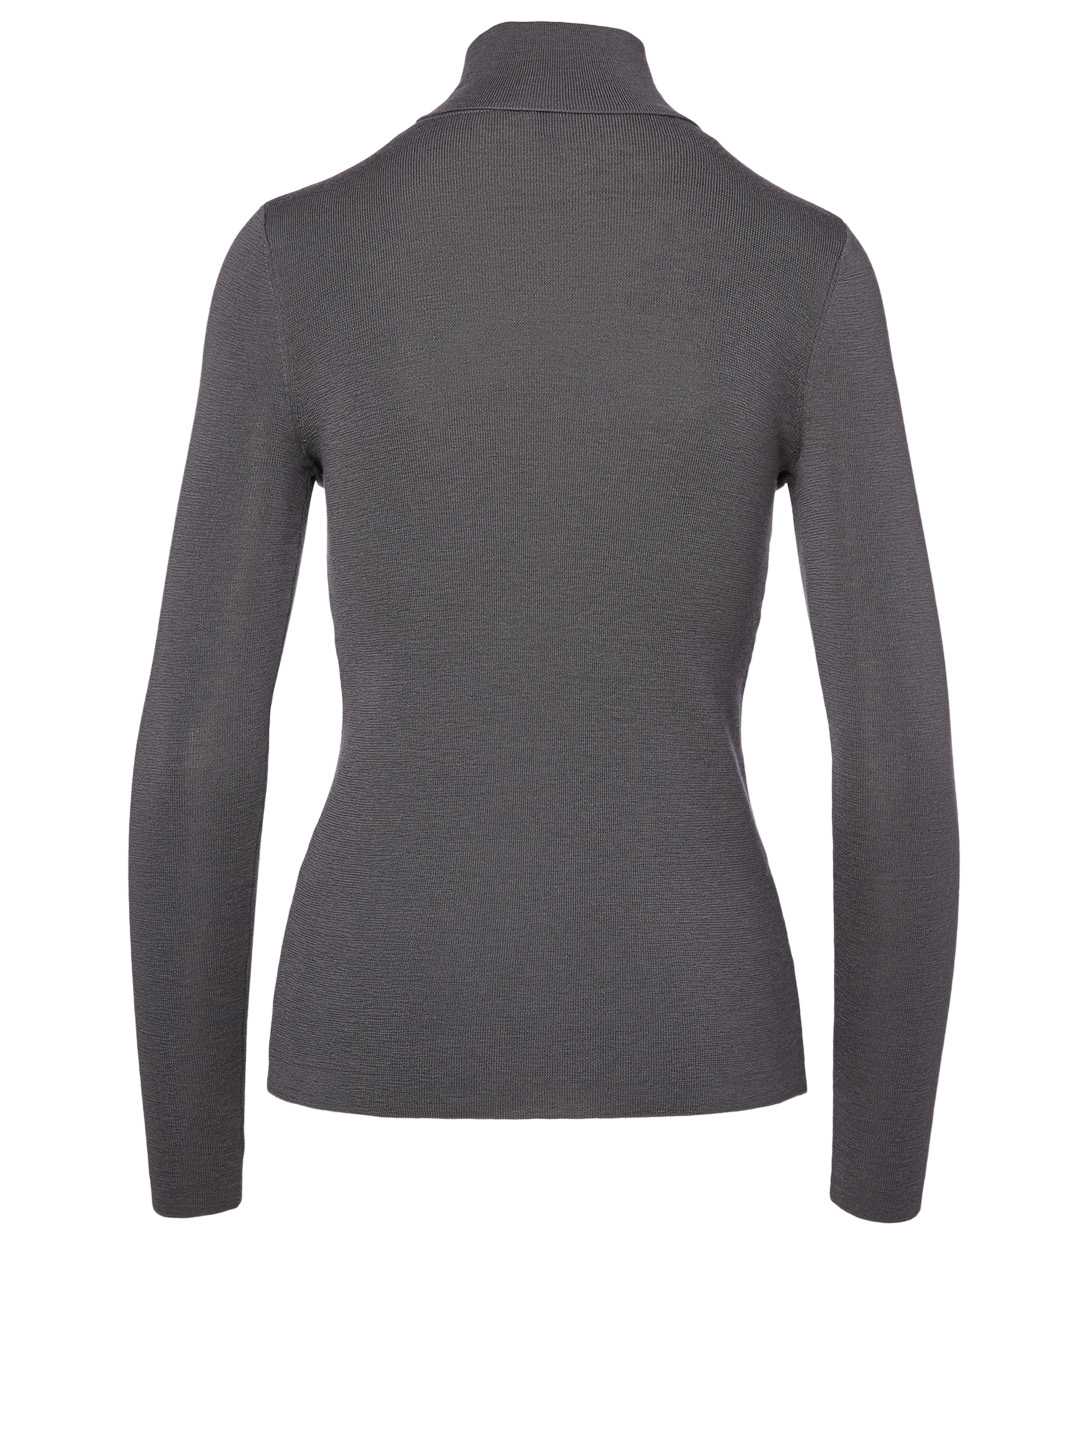 TOTÊME Navais Wool Turtleneck Sweater Women's Grey